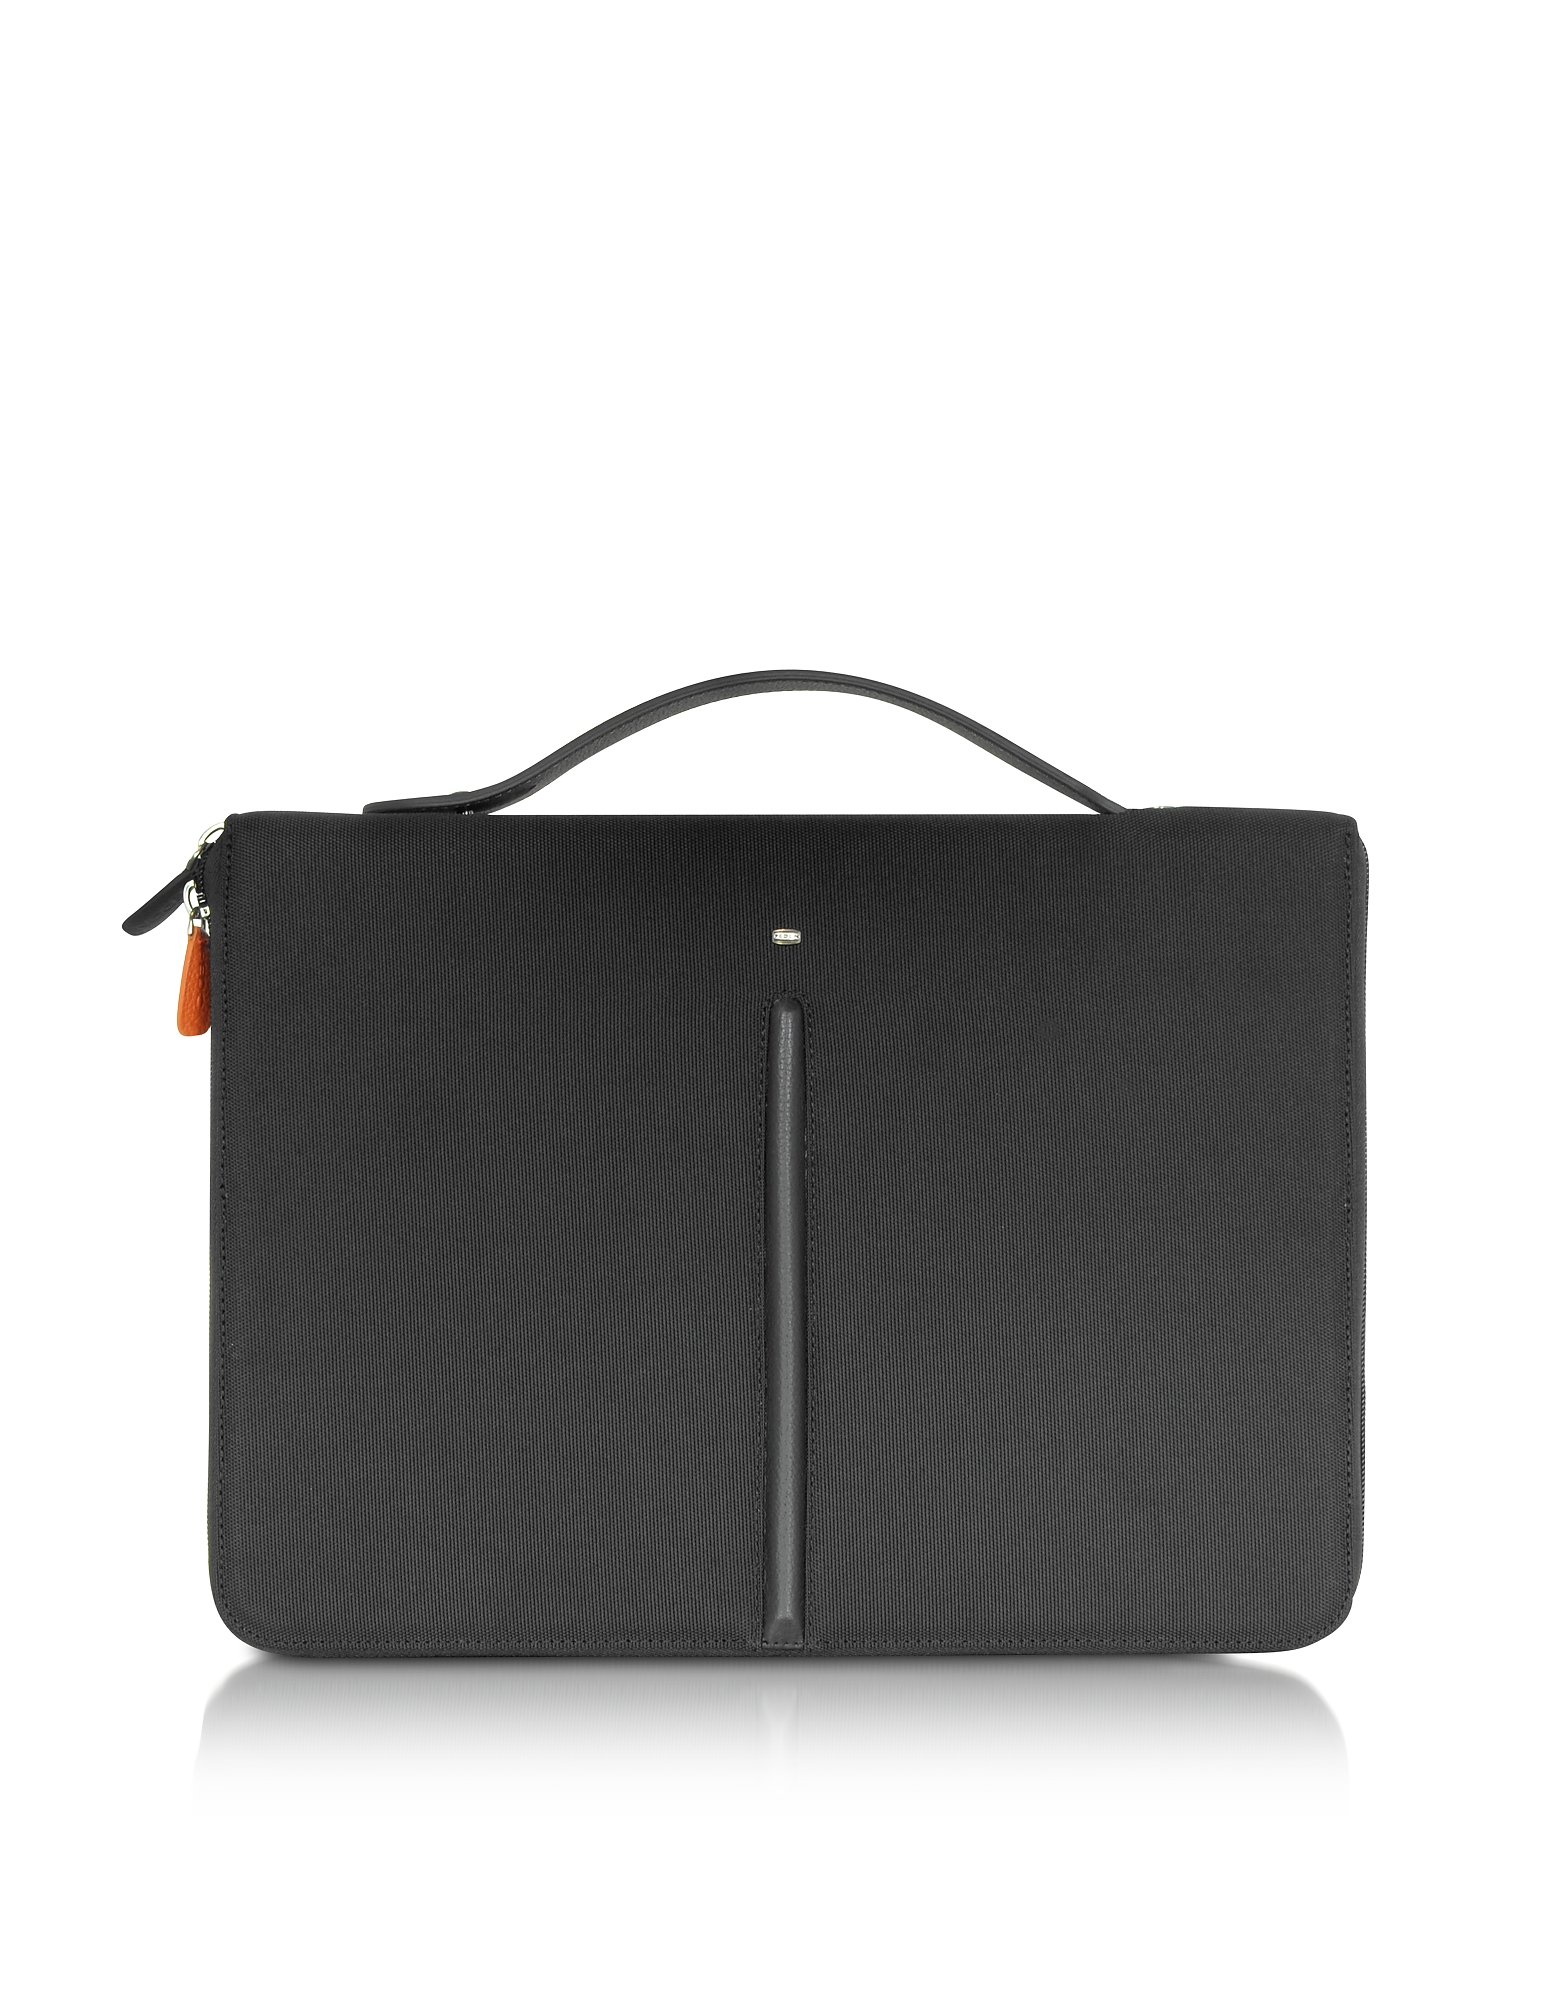 Giorgio Fedon 1919 Briefcases, Web File 2 Black Leather and Nylon 13